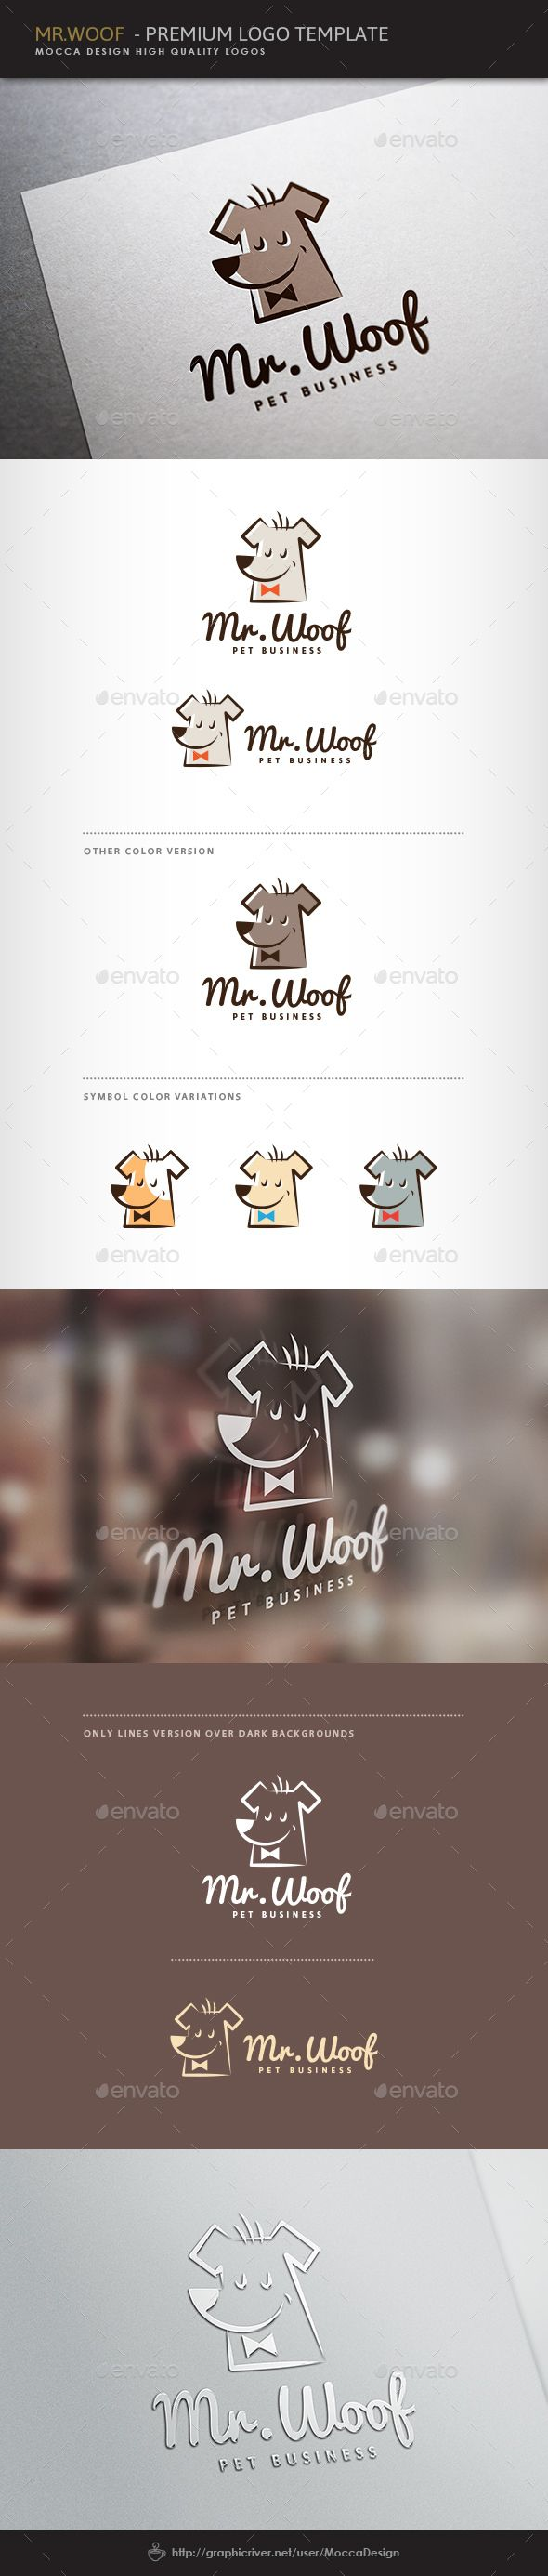 Mr.Woof Logo by MoccaDesign 2016/09 �20New color versions and file formats added. 2016/09 - All fonts of the logo changed to 100 Free fonts and Help File upda